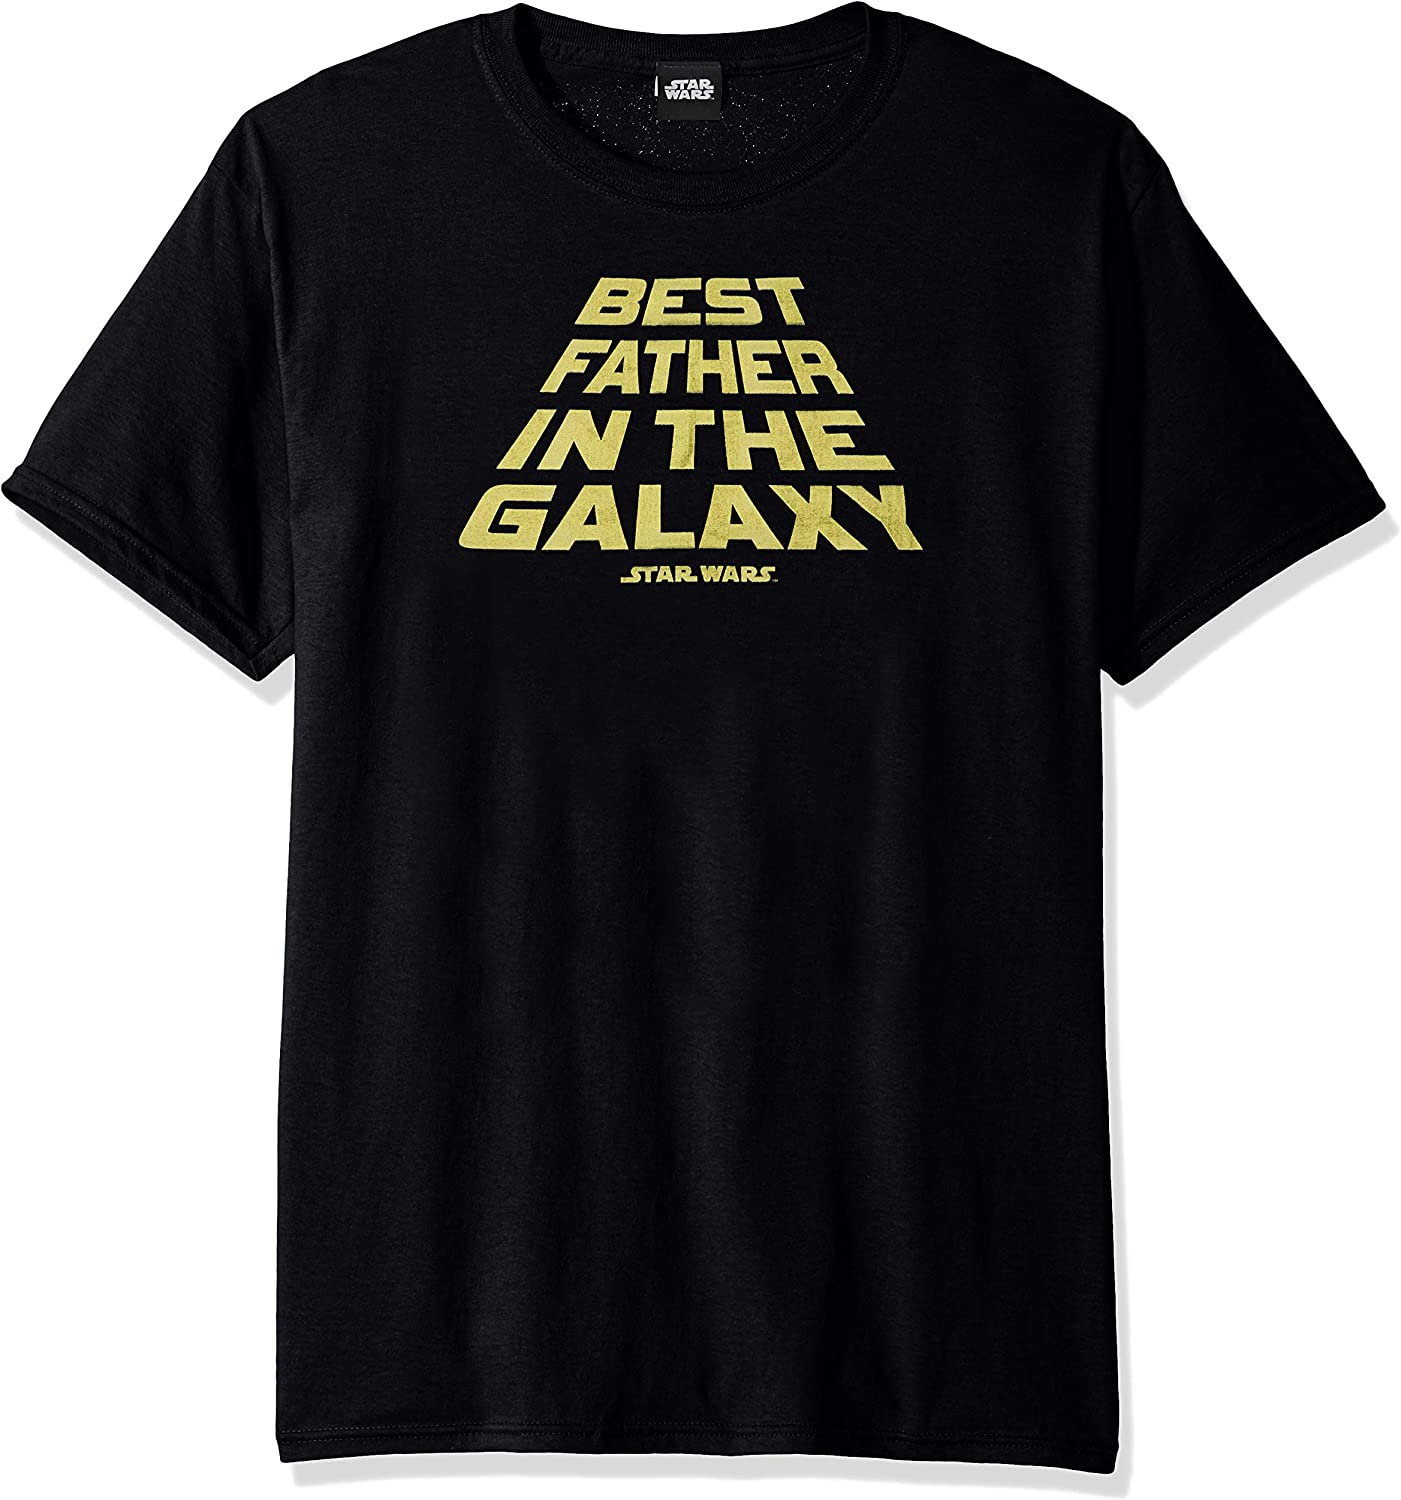 Star Wars Mens Officially Licensed Tees for Dad